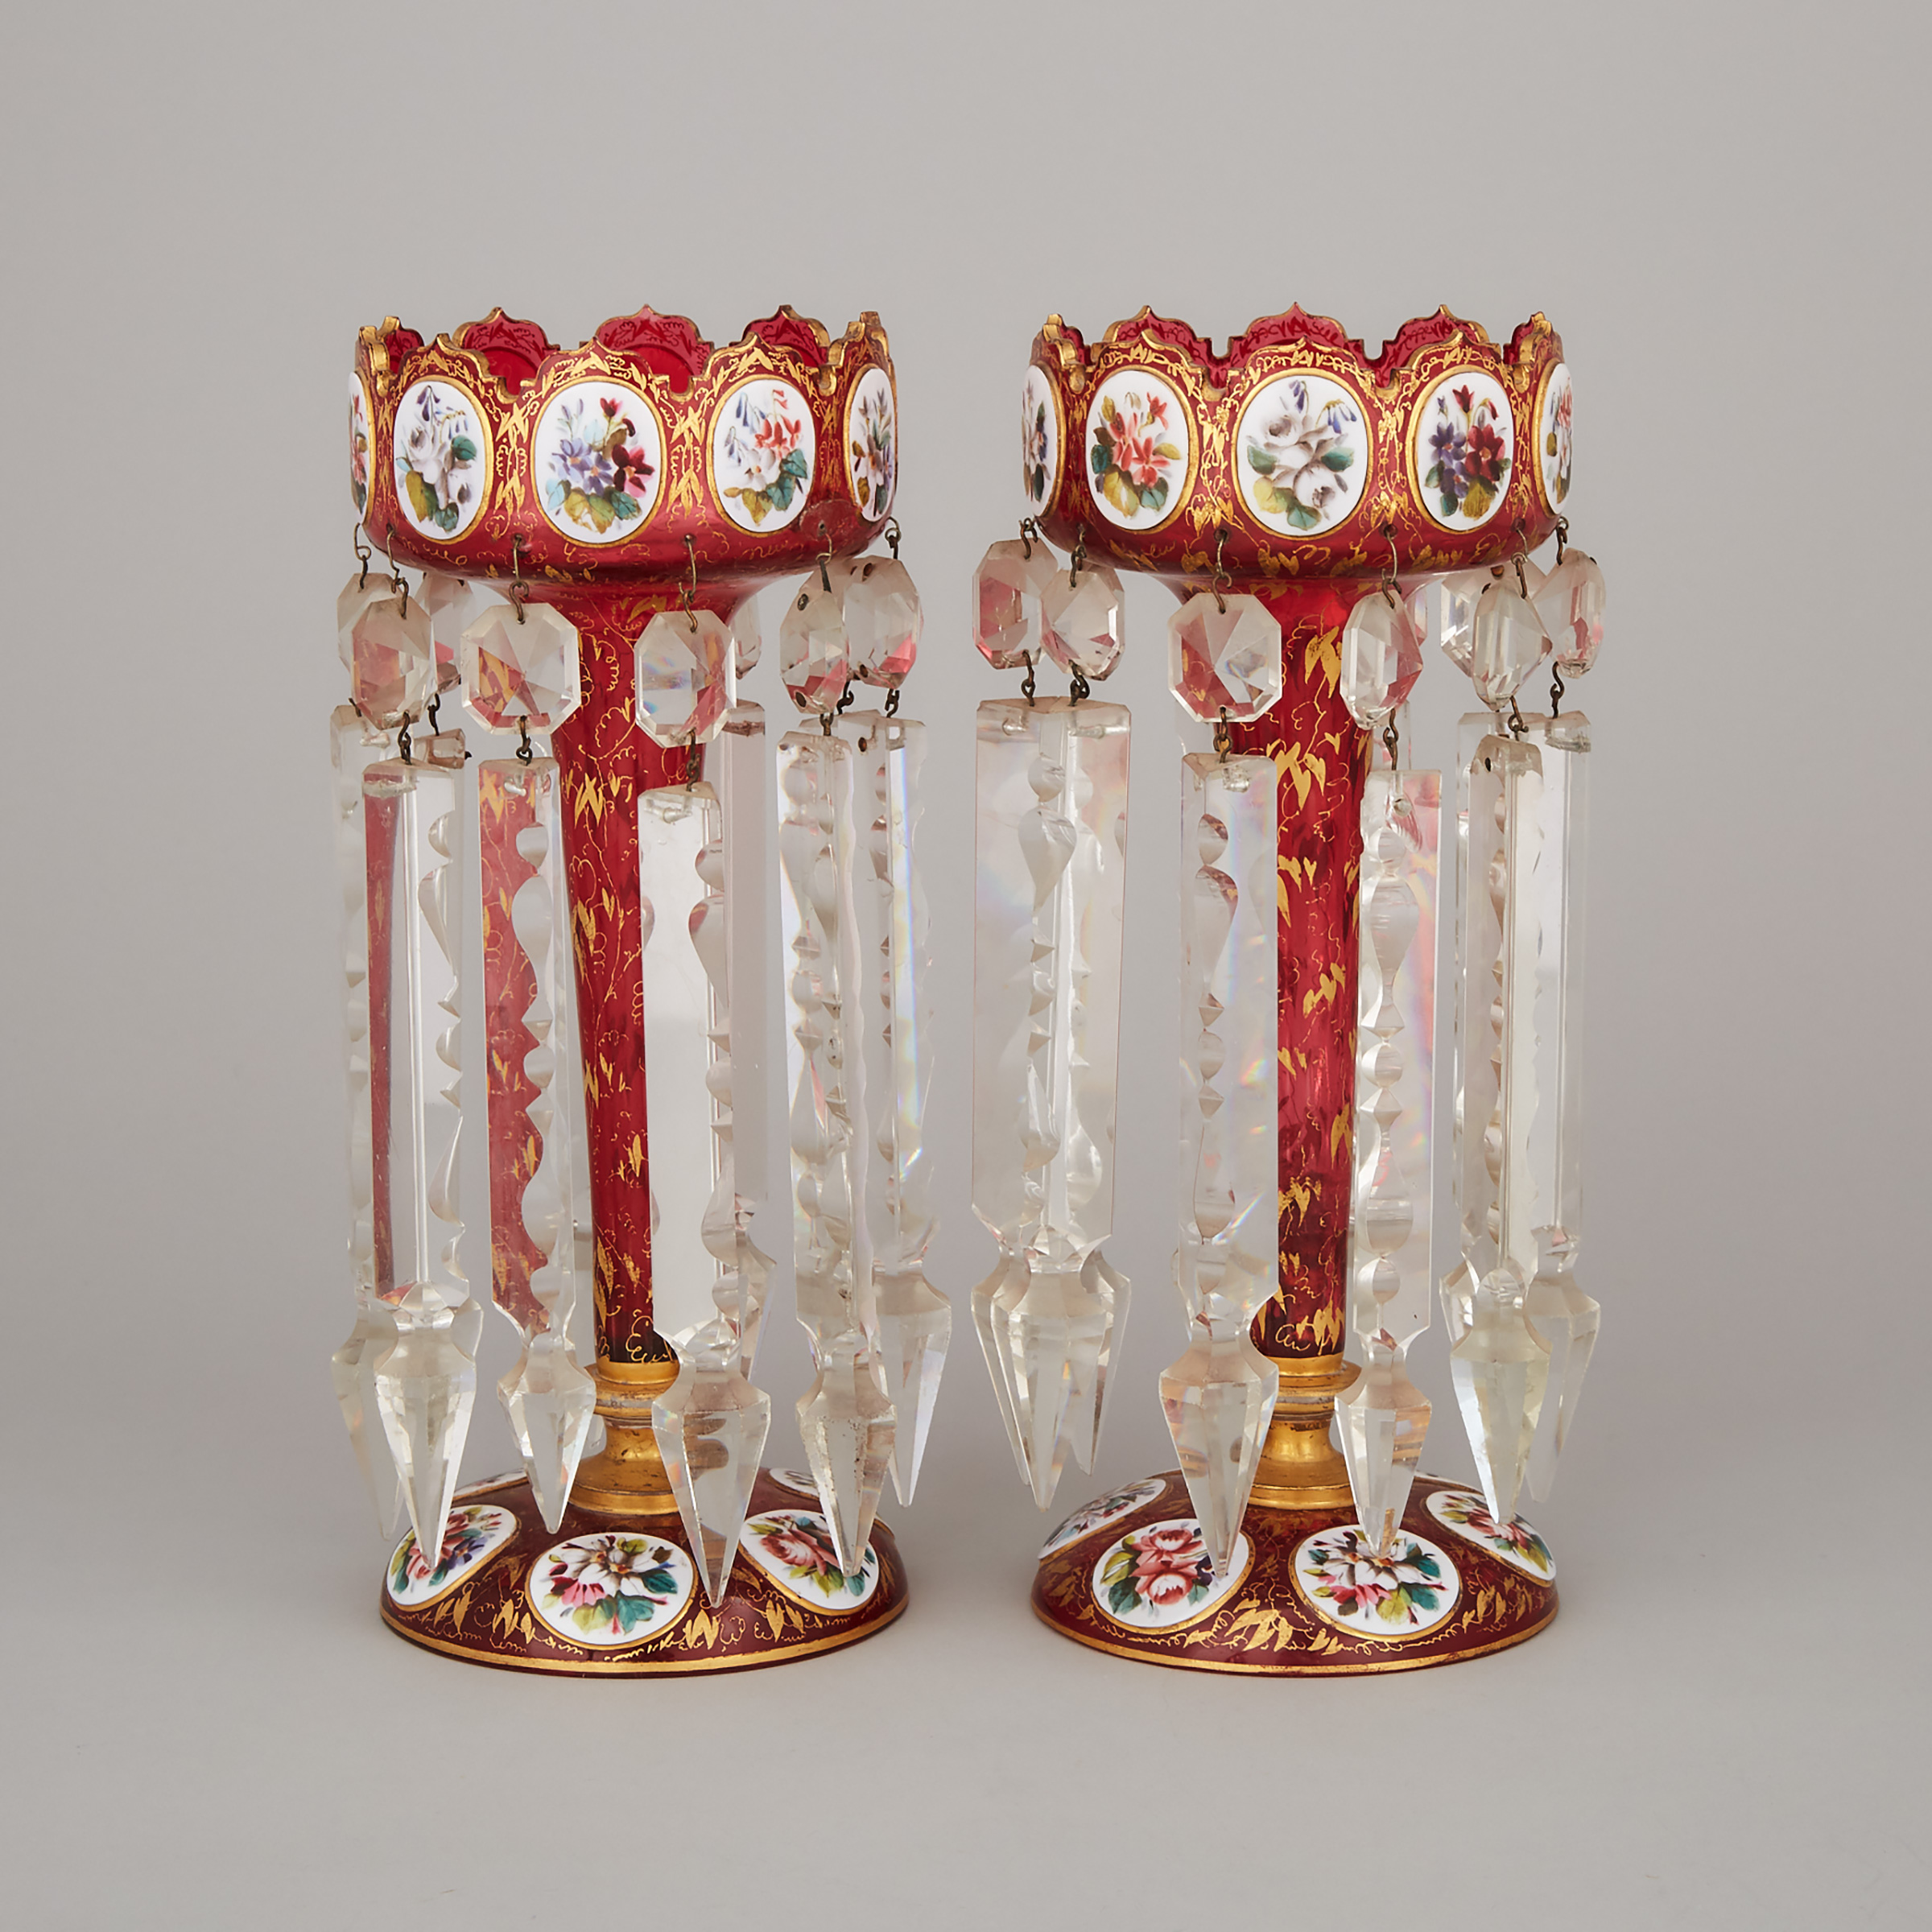 Pair of Bohemian Overlaid, Enameled and Gilt Red Glass Lustres, late 19th century